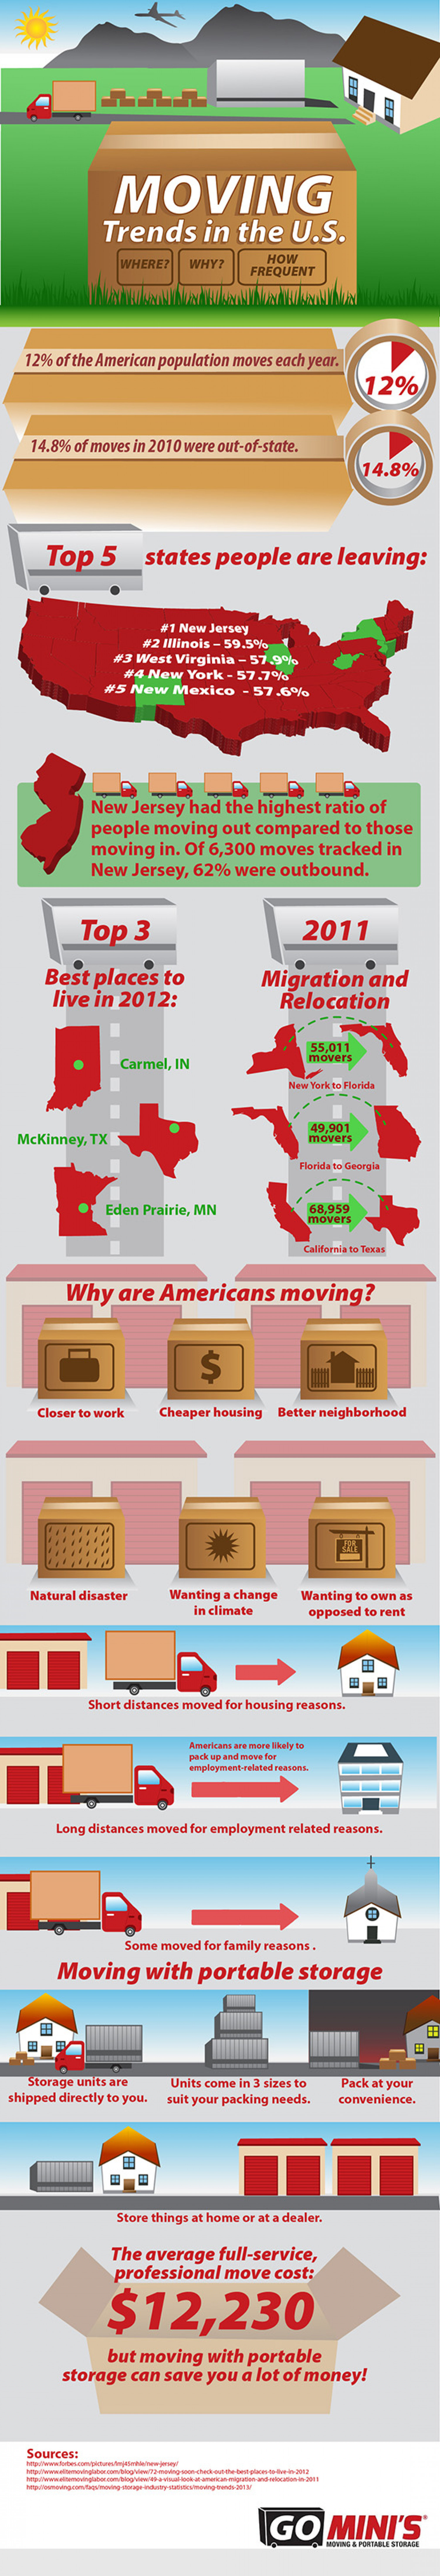 Moving Trends in the United States Infographic